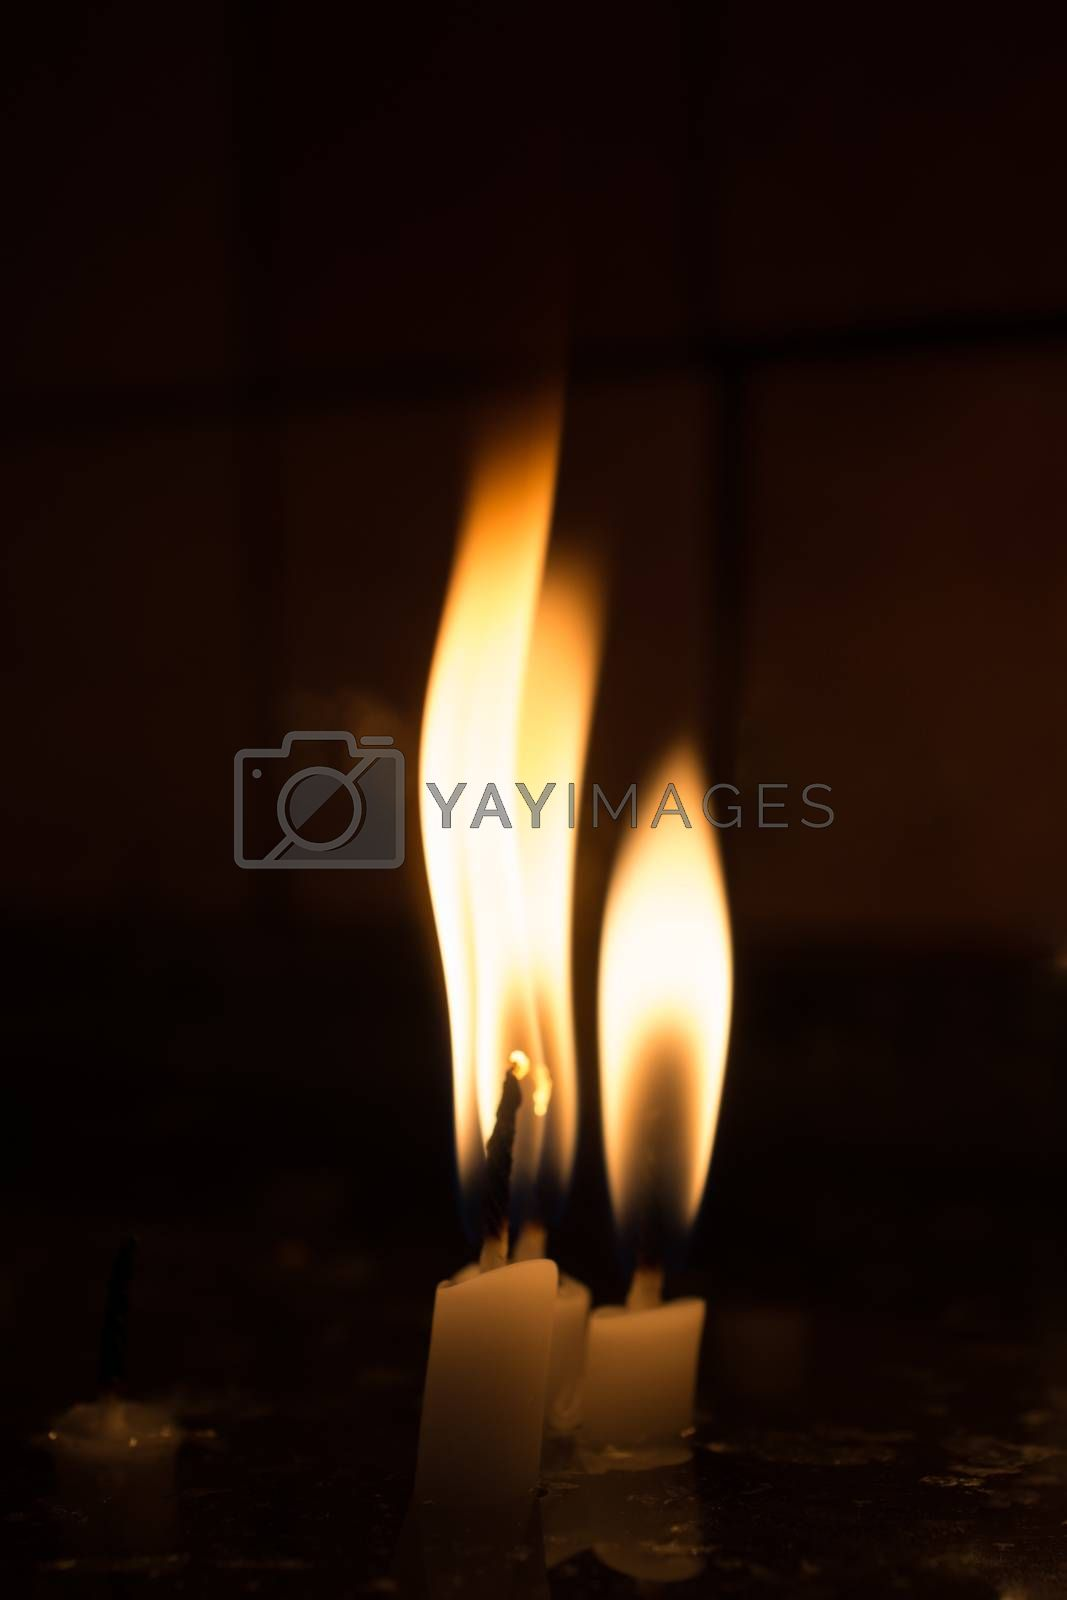 Burning candles with candle light in the dark